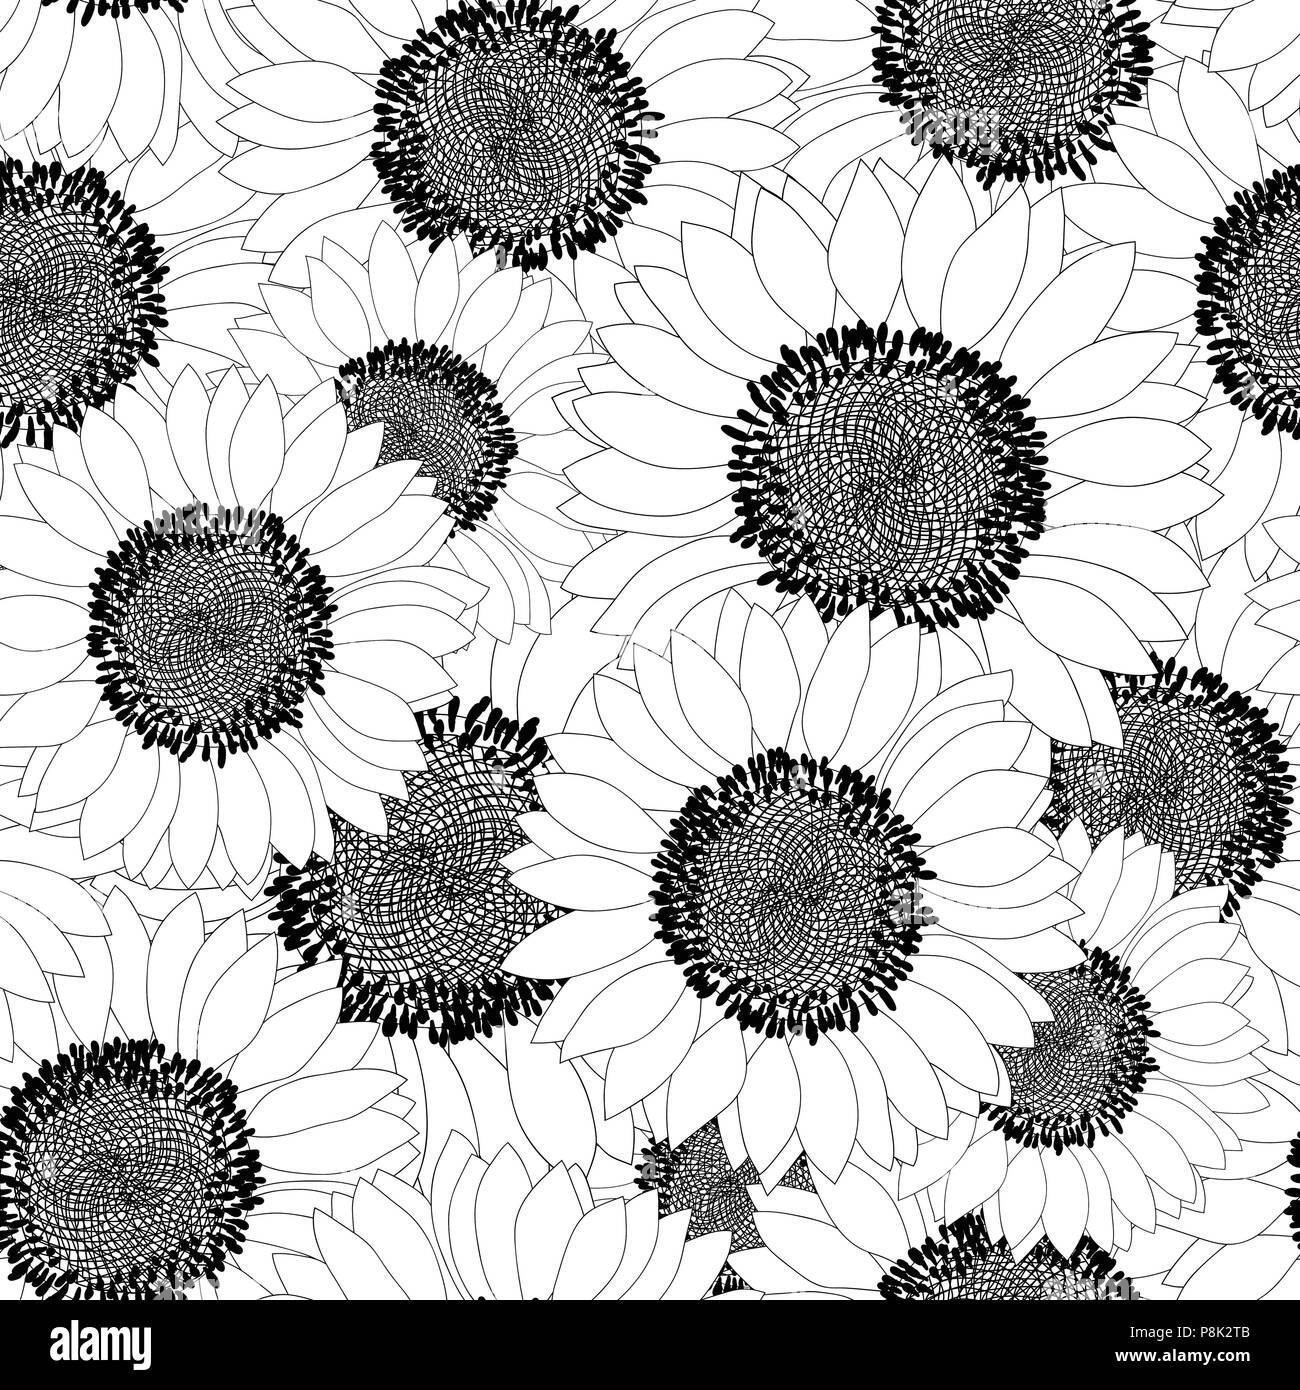 Sunflower Outline Seamless Background Vector Illustration Stock Vector Image Art Alamy You can find more sunflower outline drawing in our search box. https www alamy com sunflower outline seamless background vector illustration image211861003 html